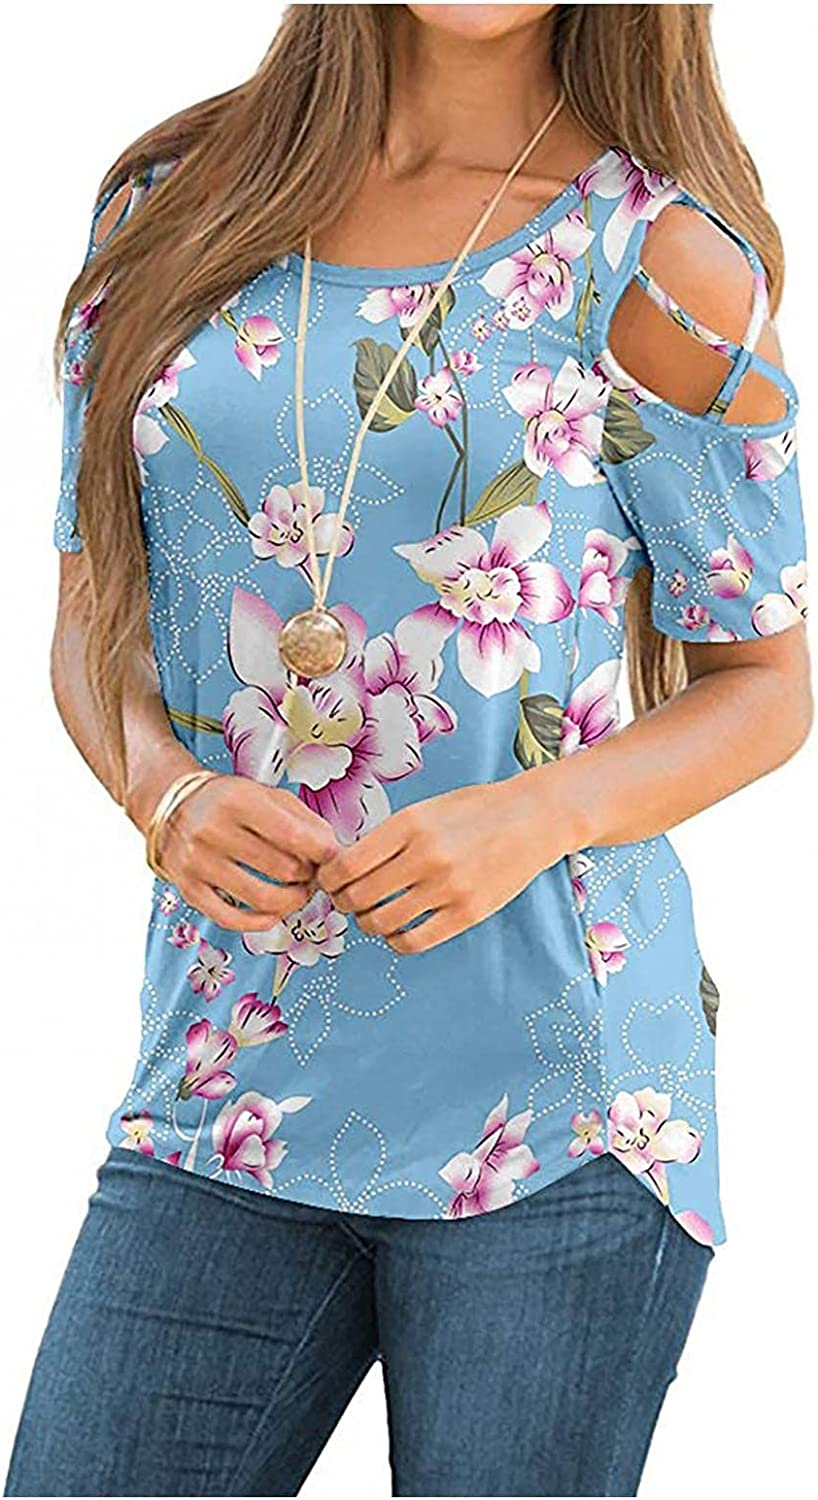 xoxing Plus Size Tops for Women Summer Floral Printing Short Sleeve Strappy Cold Shoulder Loose Tunic T-Shirts Blouses